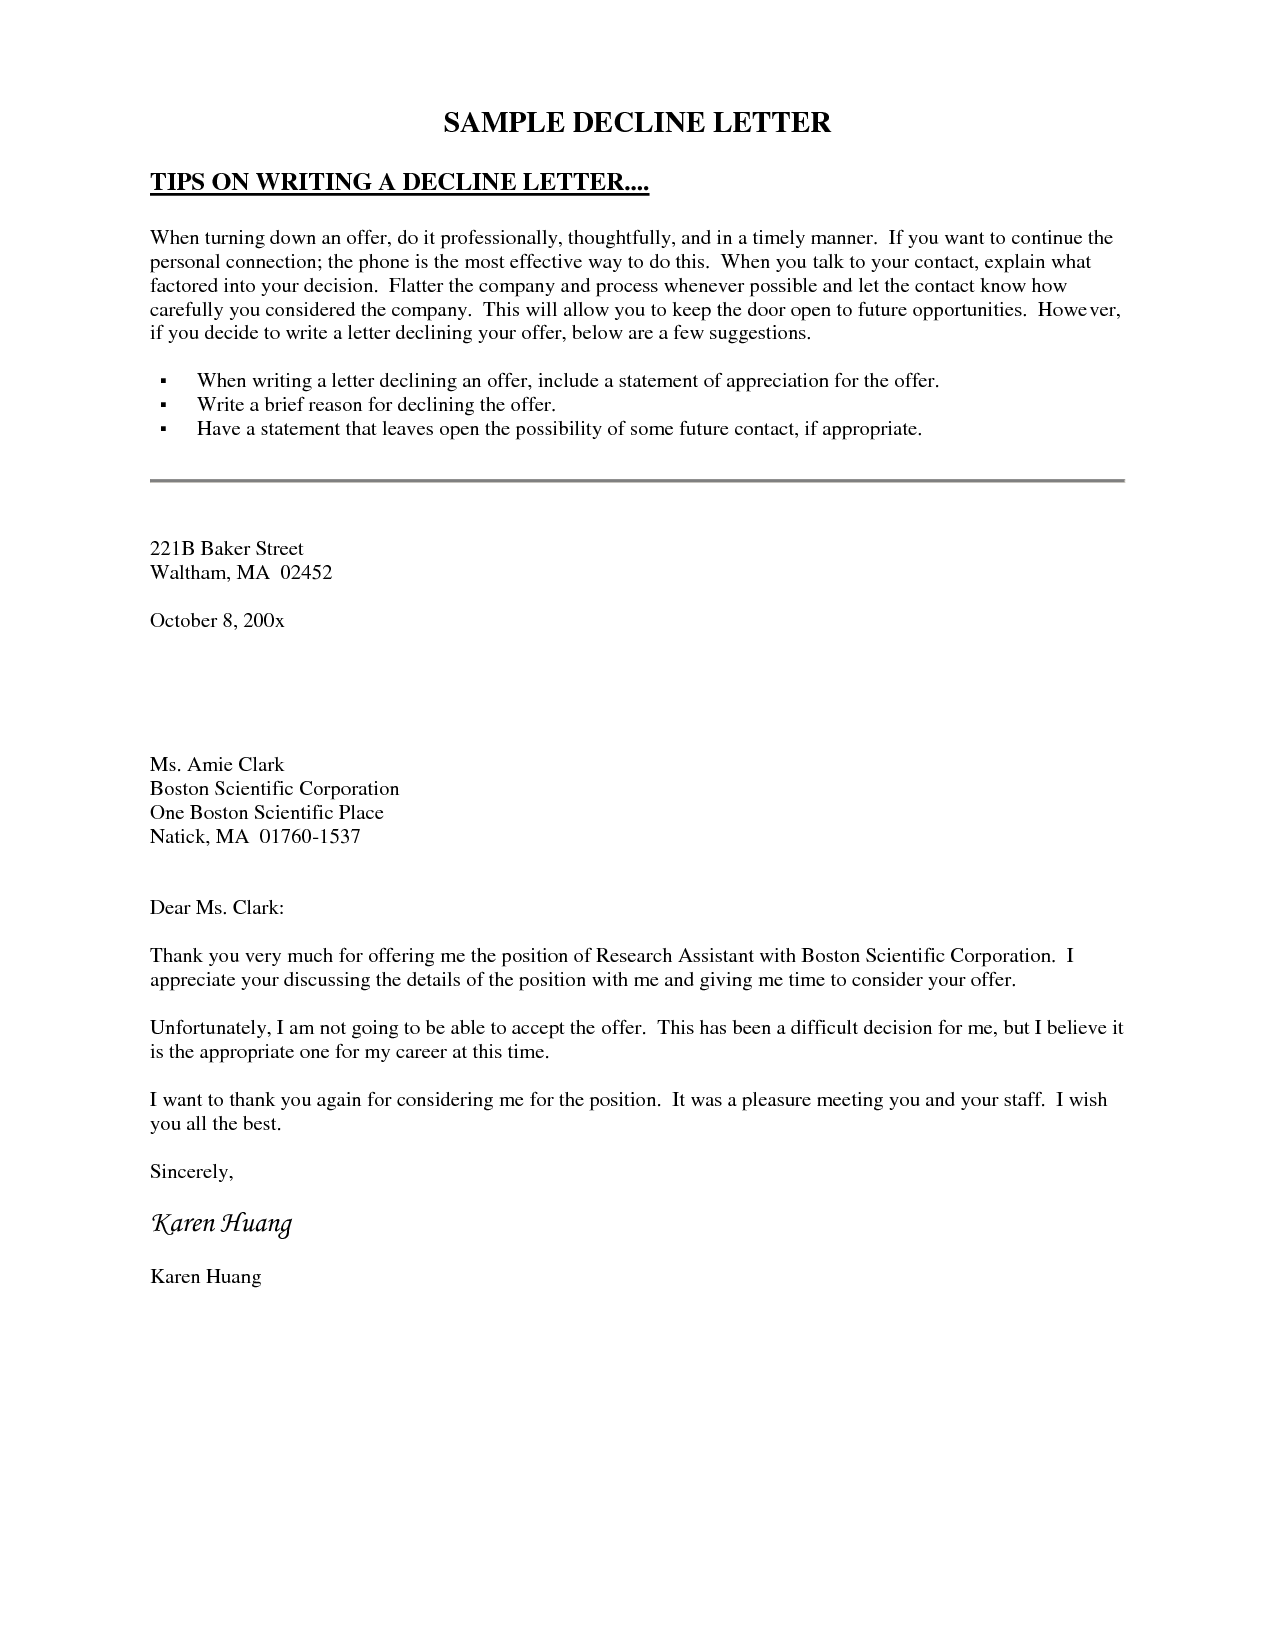 Decline invitation letter this letter template declines an decline invitation letter this letter template declines an invitation to serve on an organizations board of directors due to other commitments stopboris